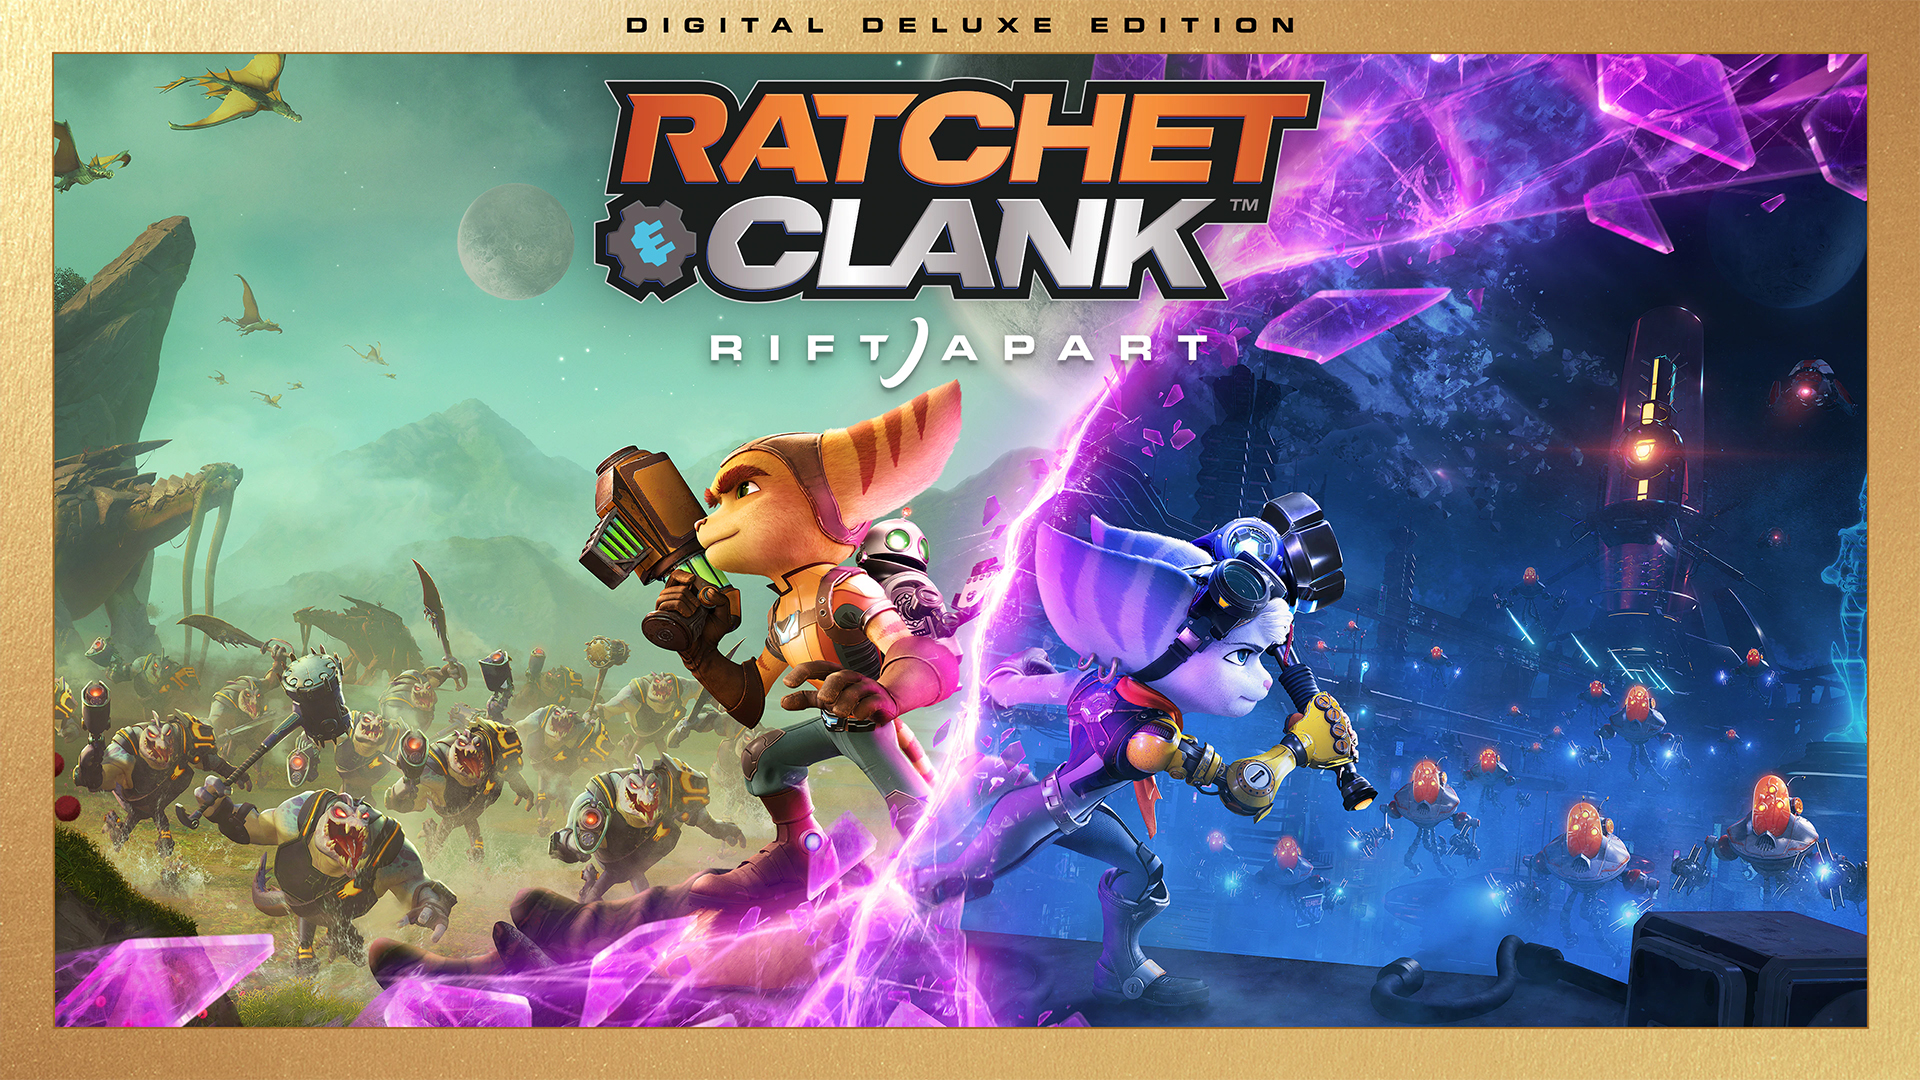 Ratchet & Clank Rift Apart Digital Deluxe